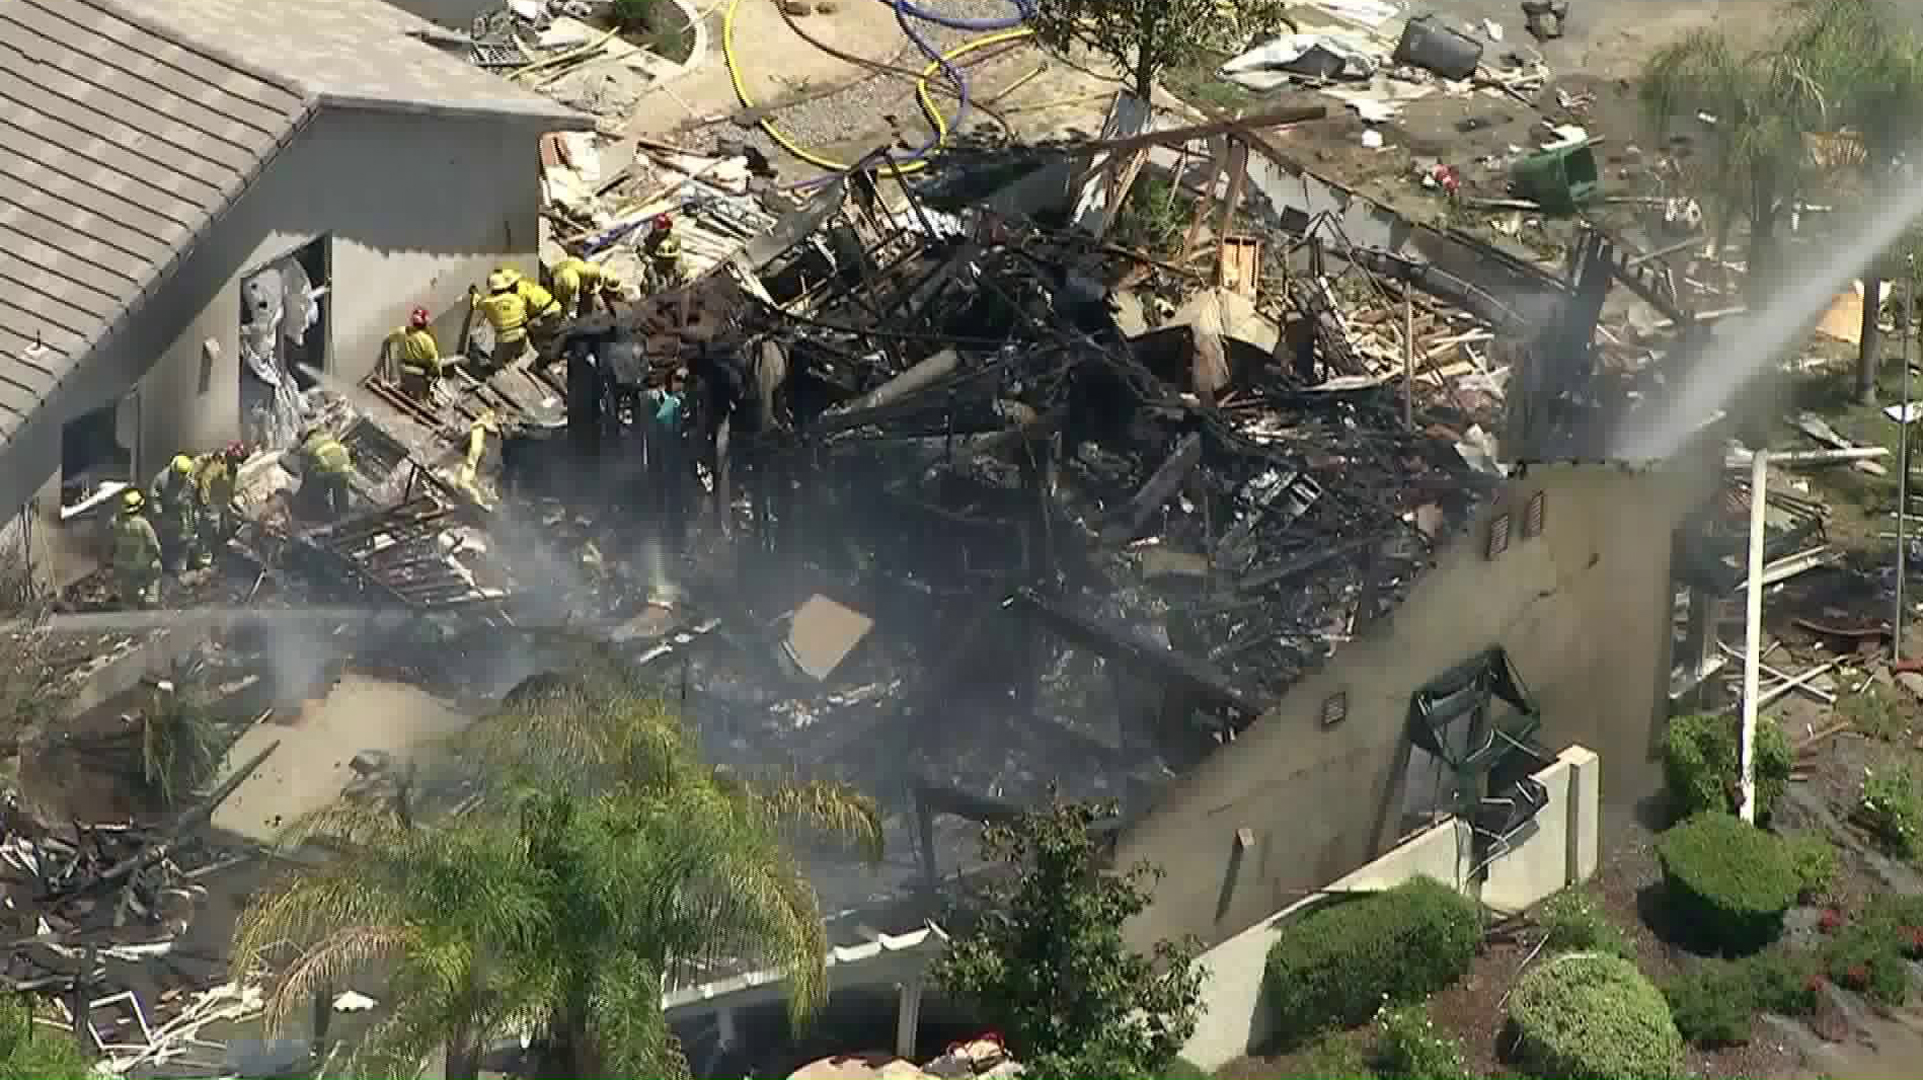 One person was killed and more than a dozen others hurt in an explosion that destroyed a home in Murrieta on July 15, 2019. (Credit: KTLA)